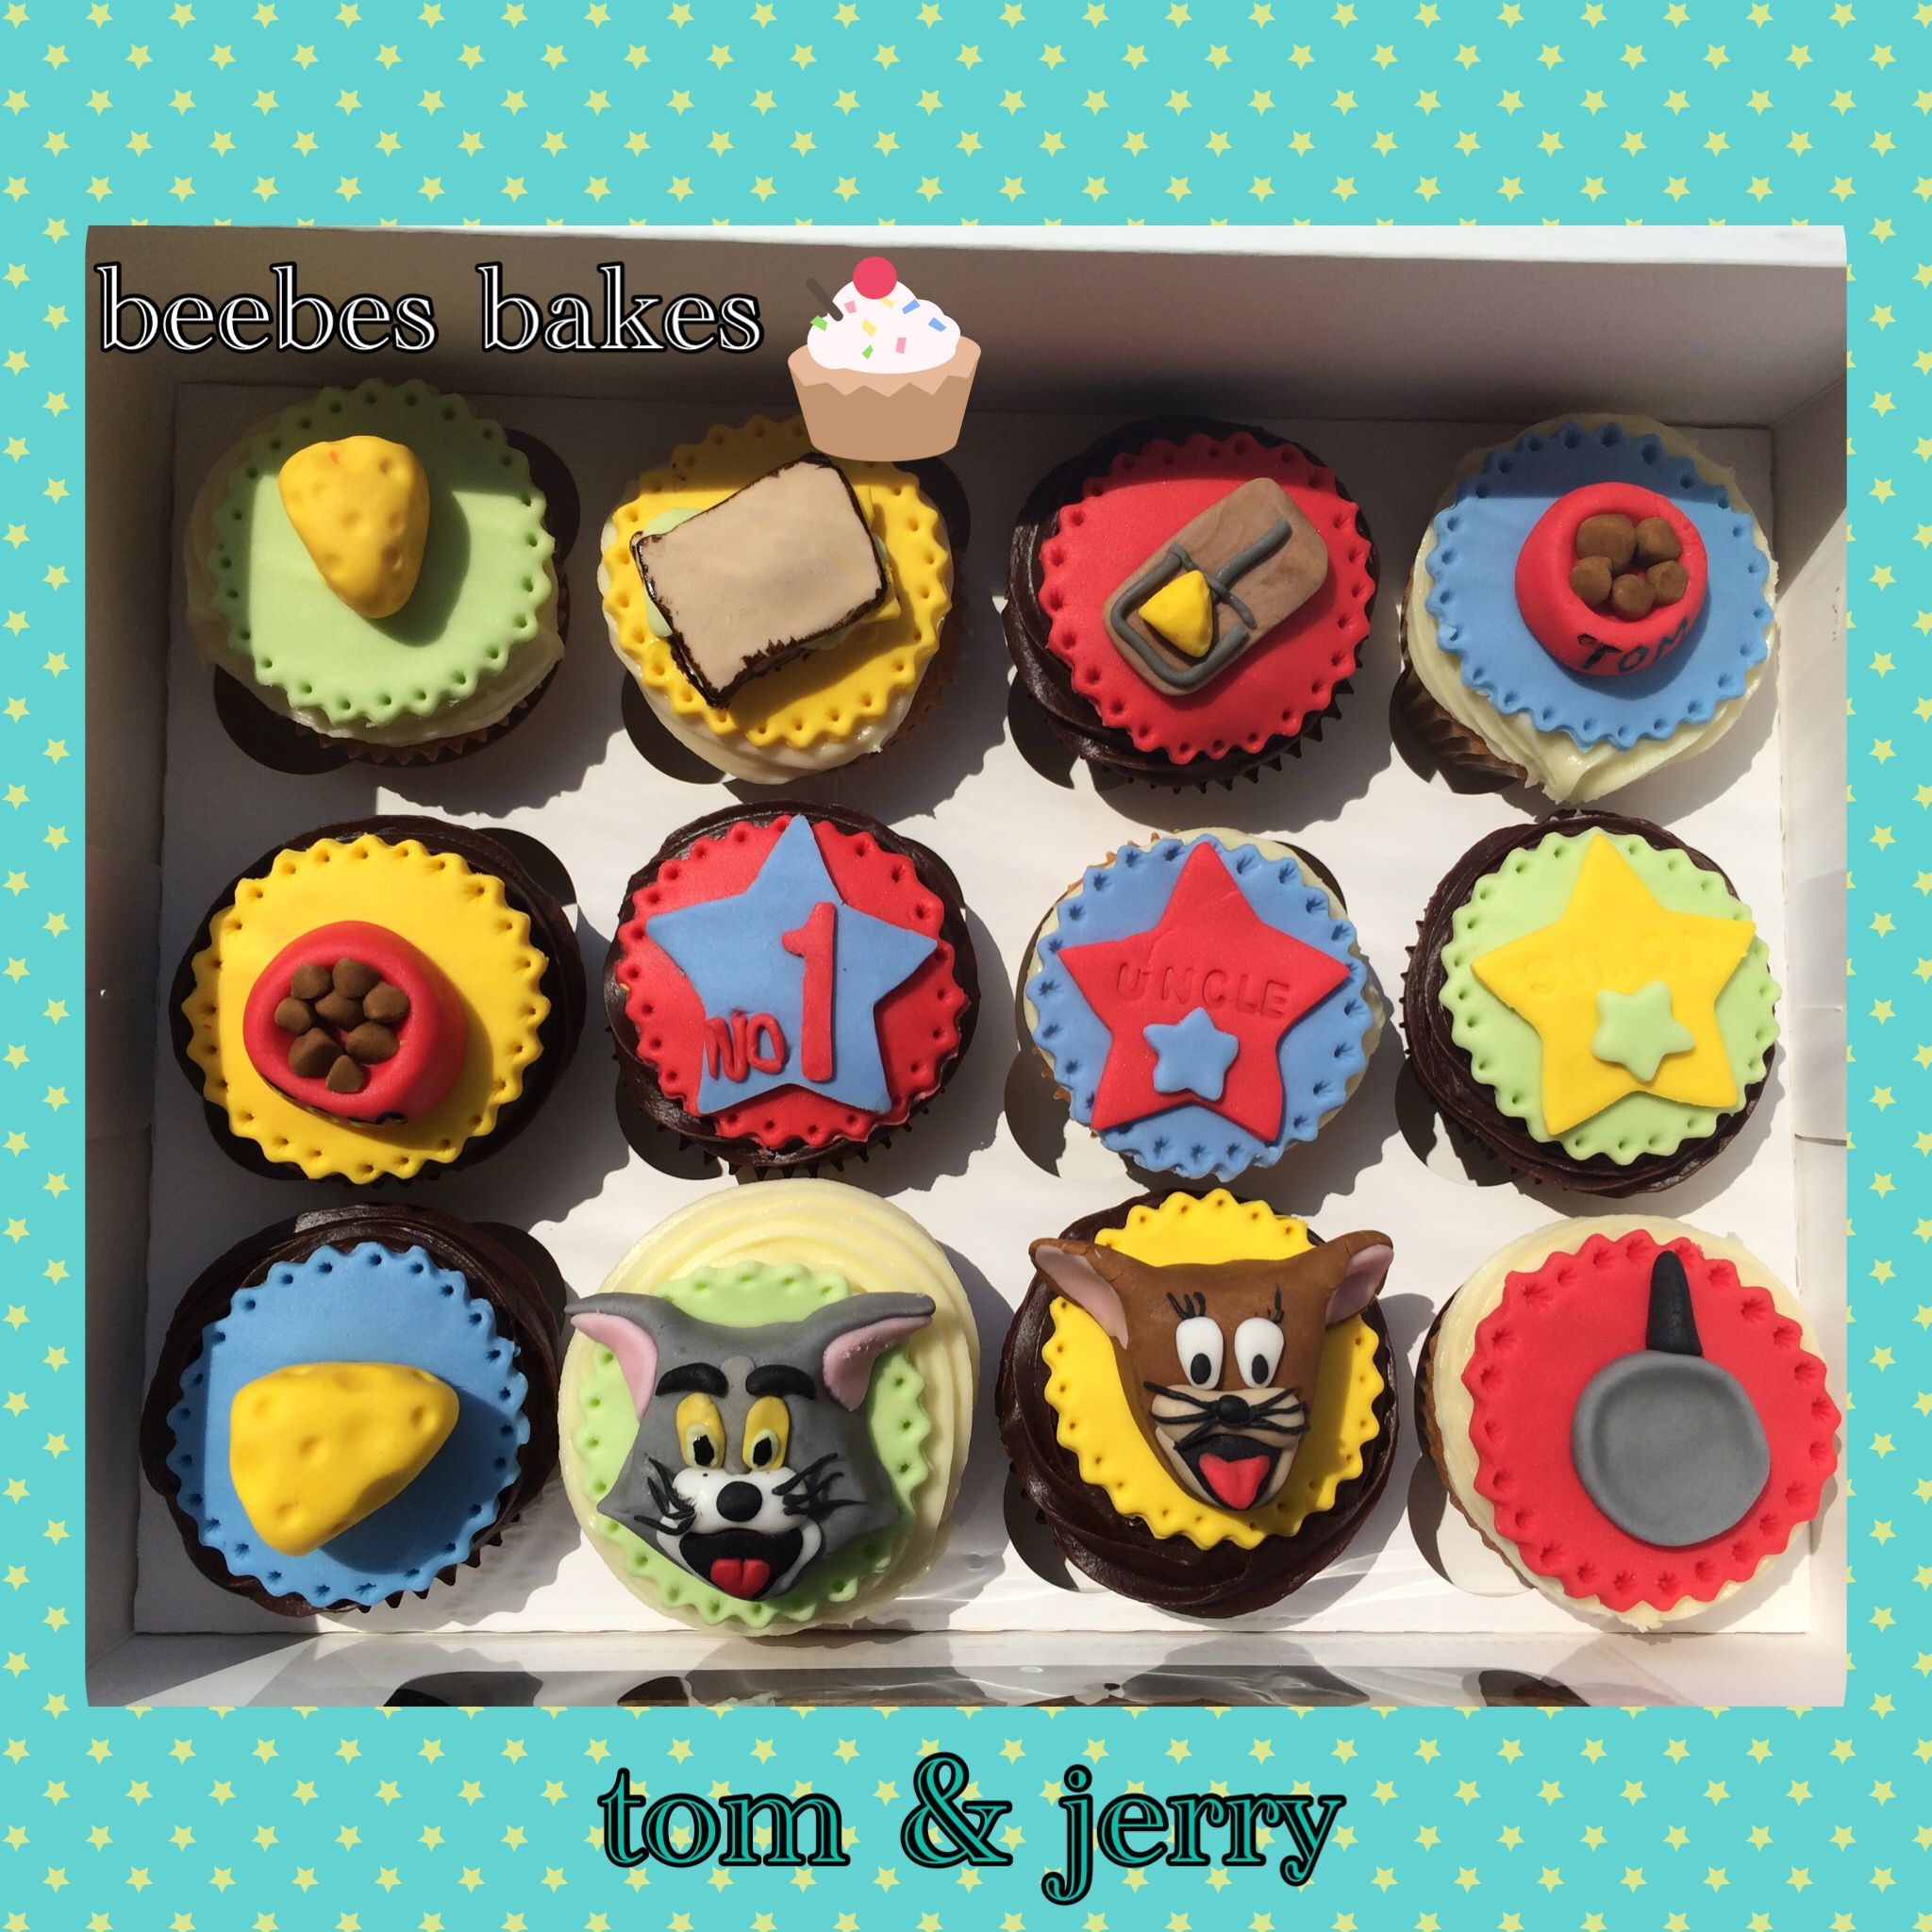 Tom jerry cupcakes Cakes Pinterest Frosting and Cake